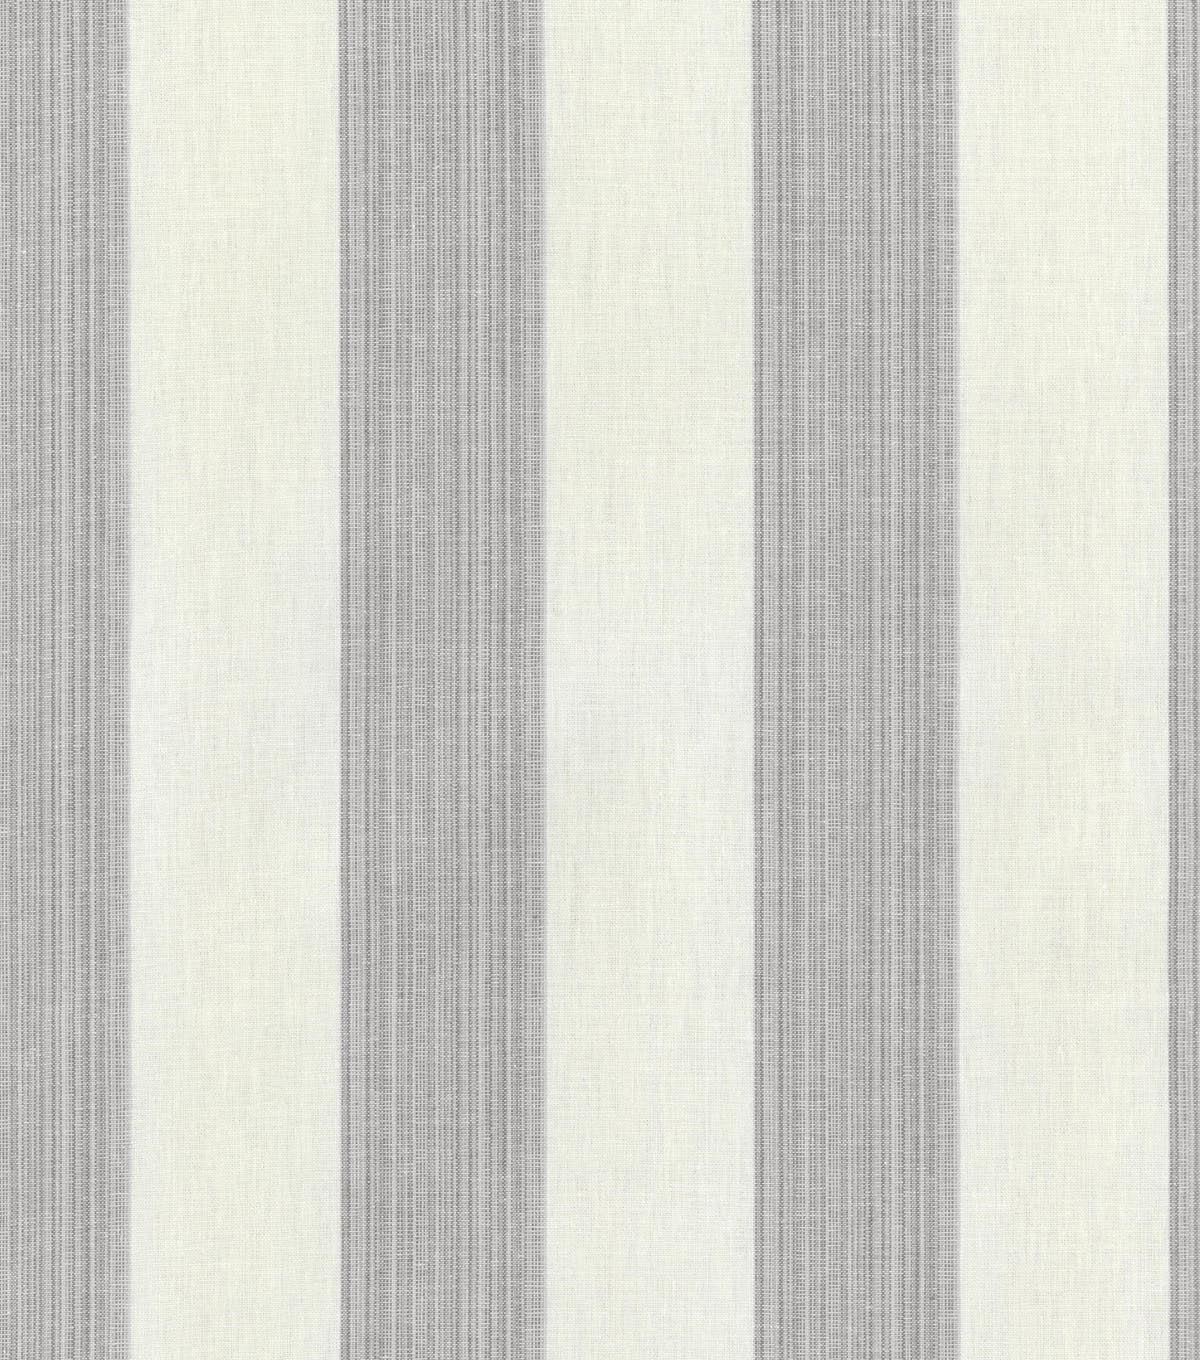 Home Decor 8\u0022x8\u0022 Swatch Fabric-Williamsburg Stratford Stripe Smoke